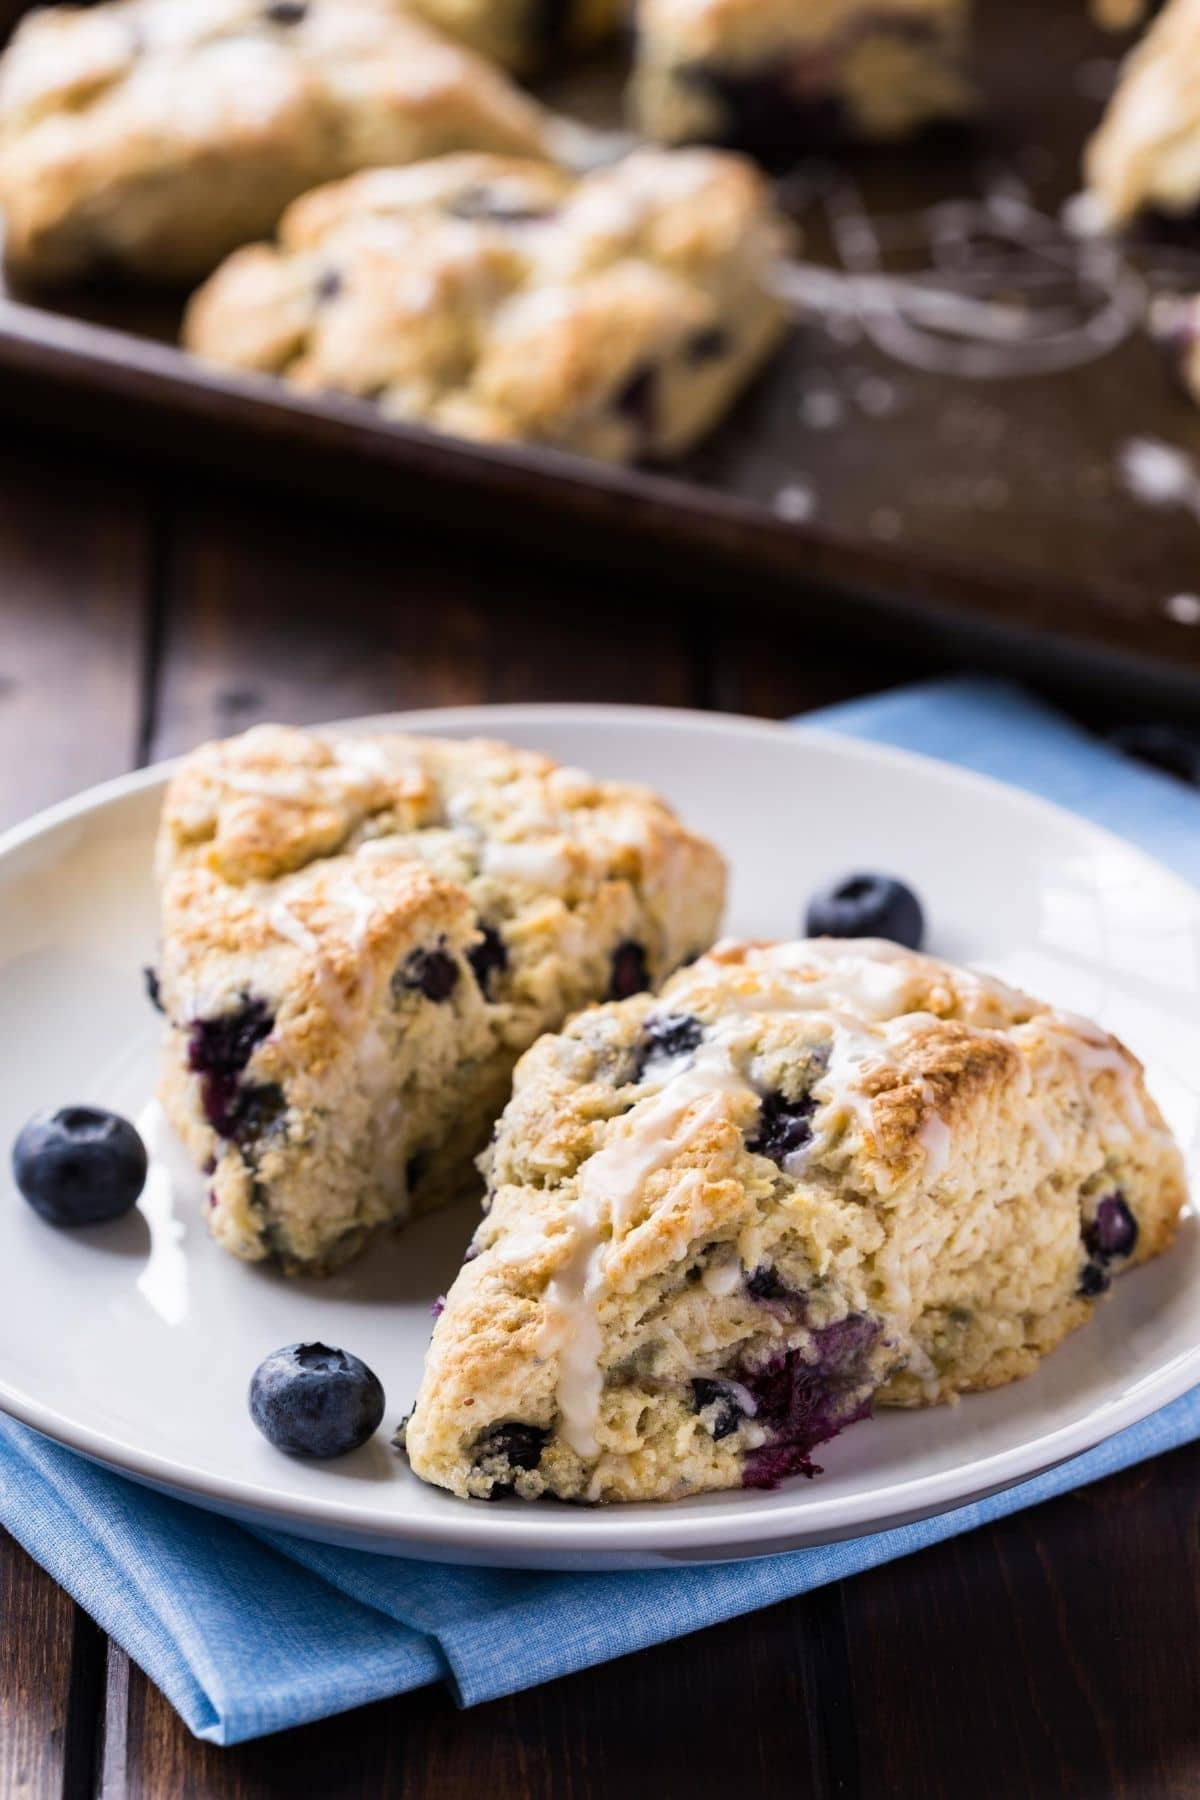 two blueberry scones on a white plate over a blue napkin with a baking sheet of scones in the background